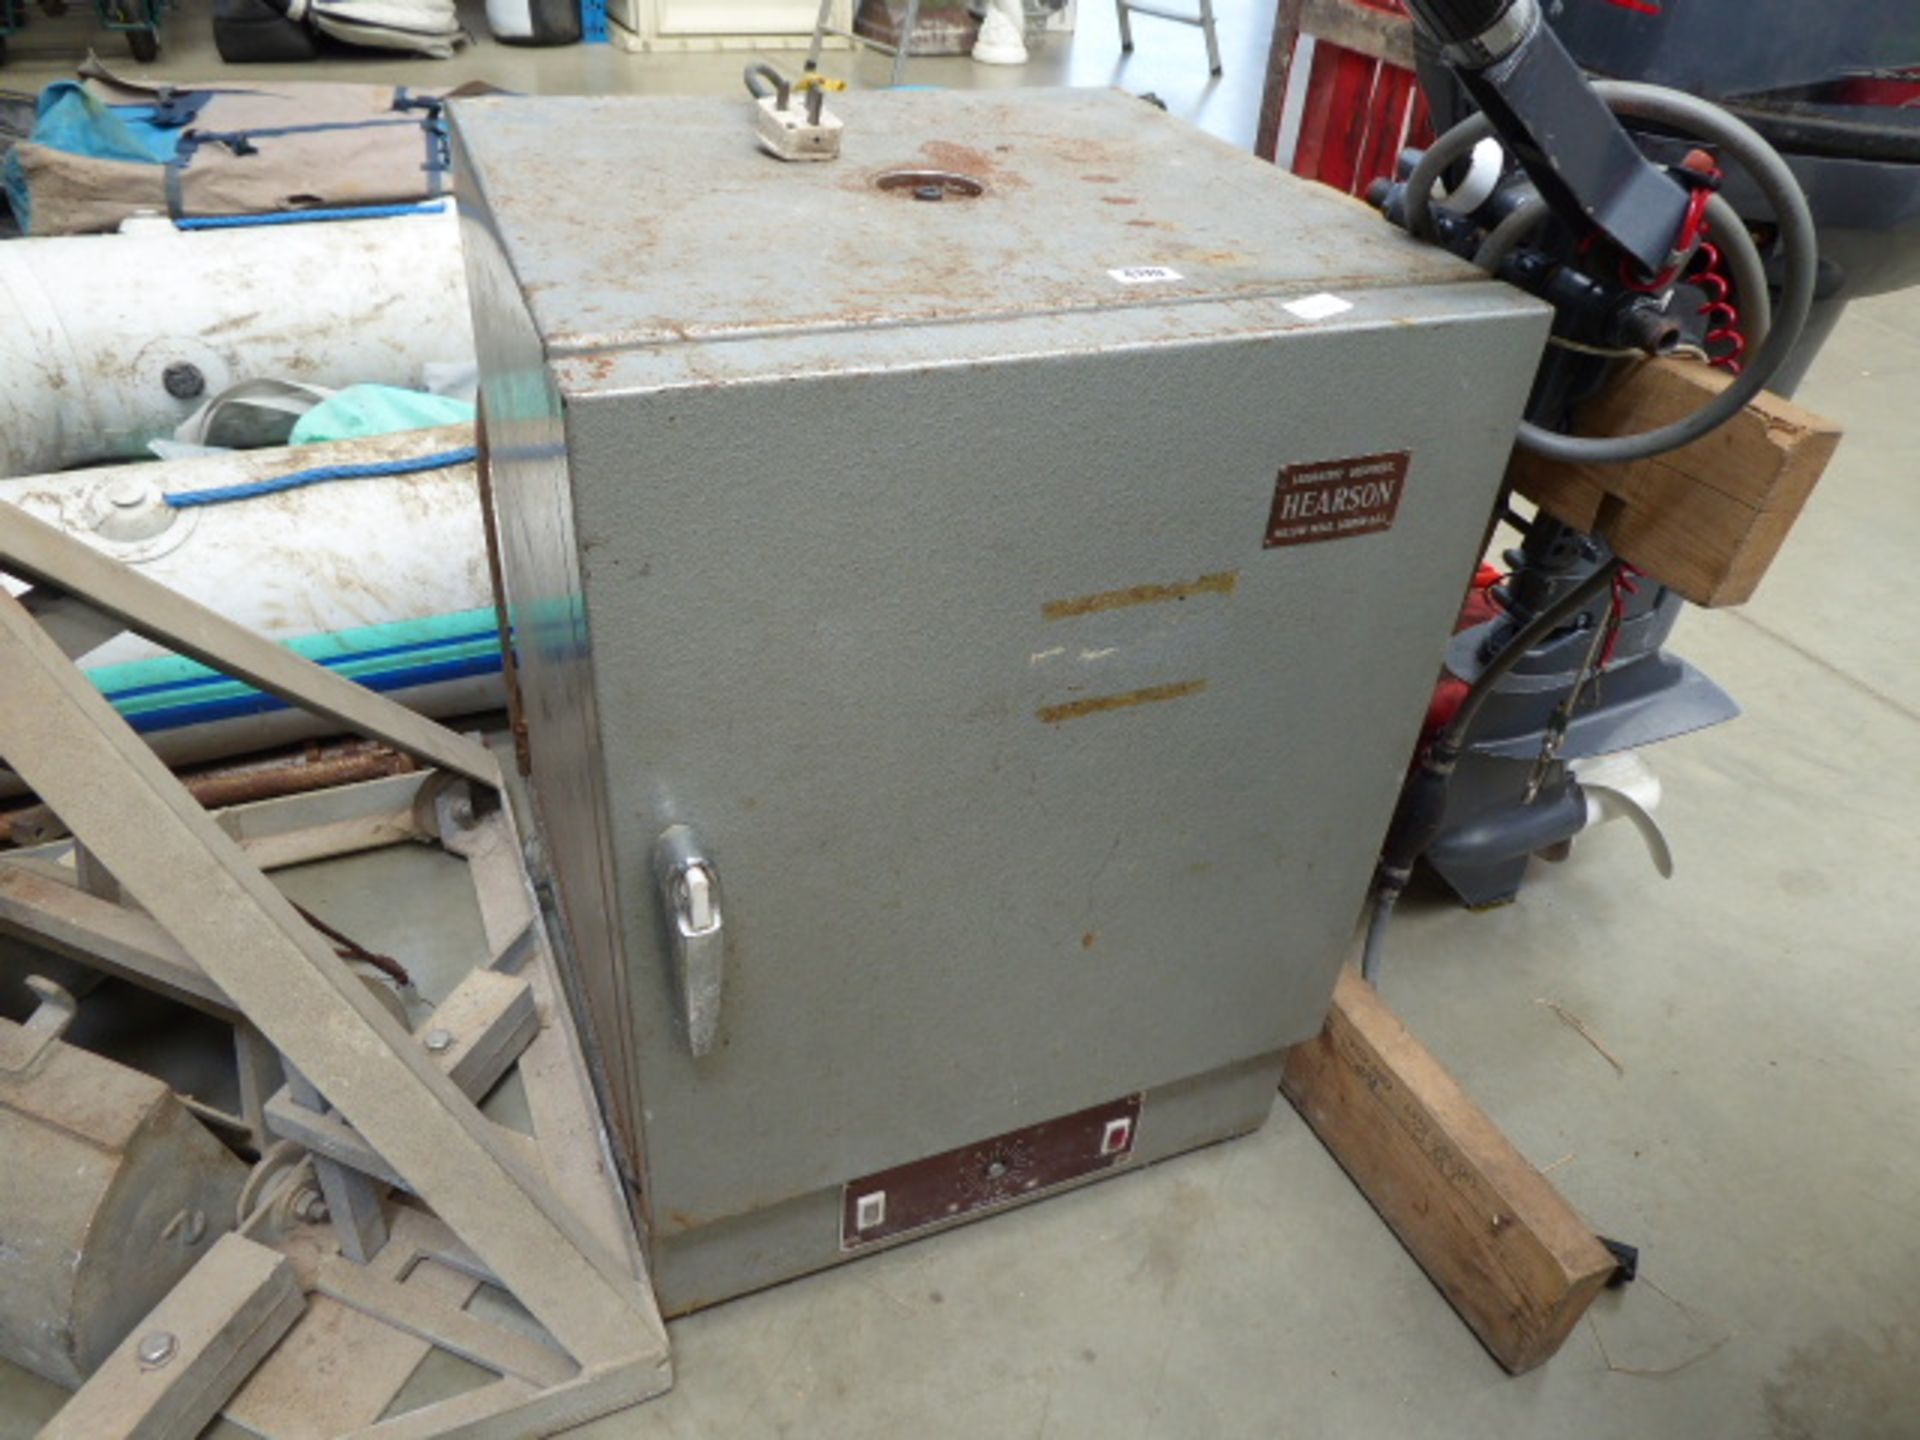 Lot 4170 - Hearson drying oven.